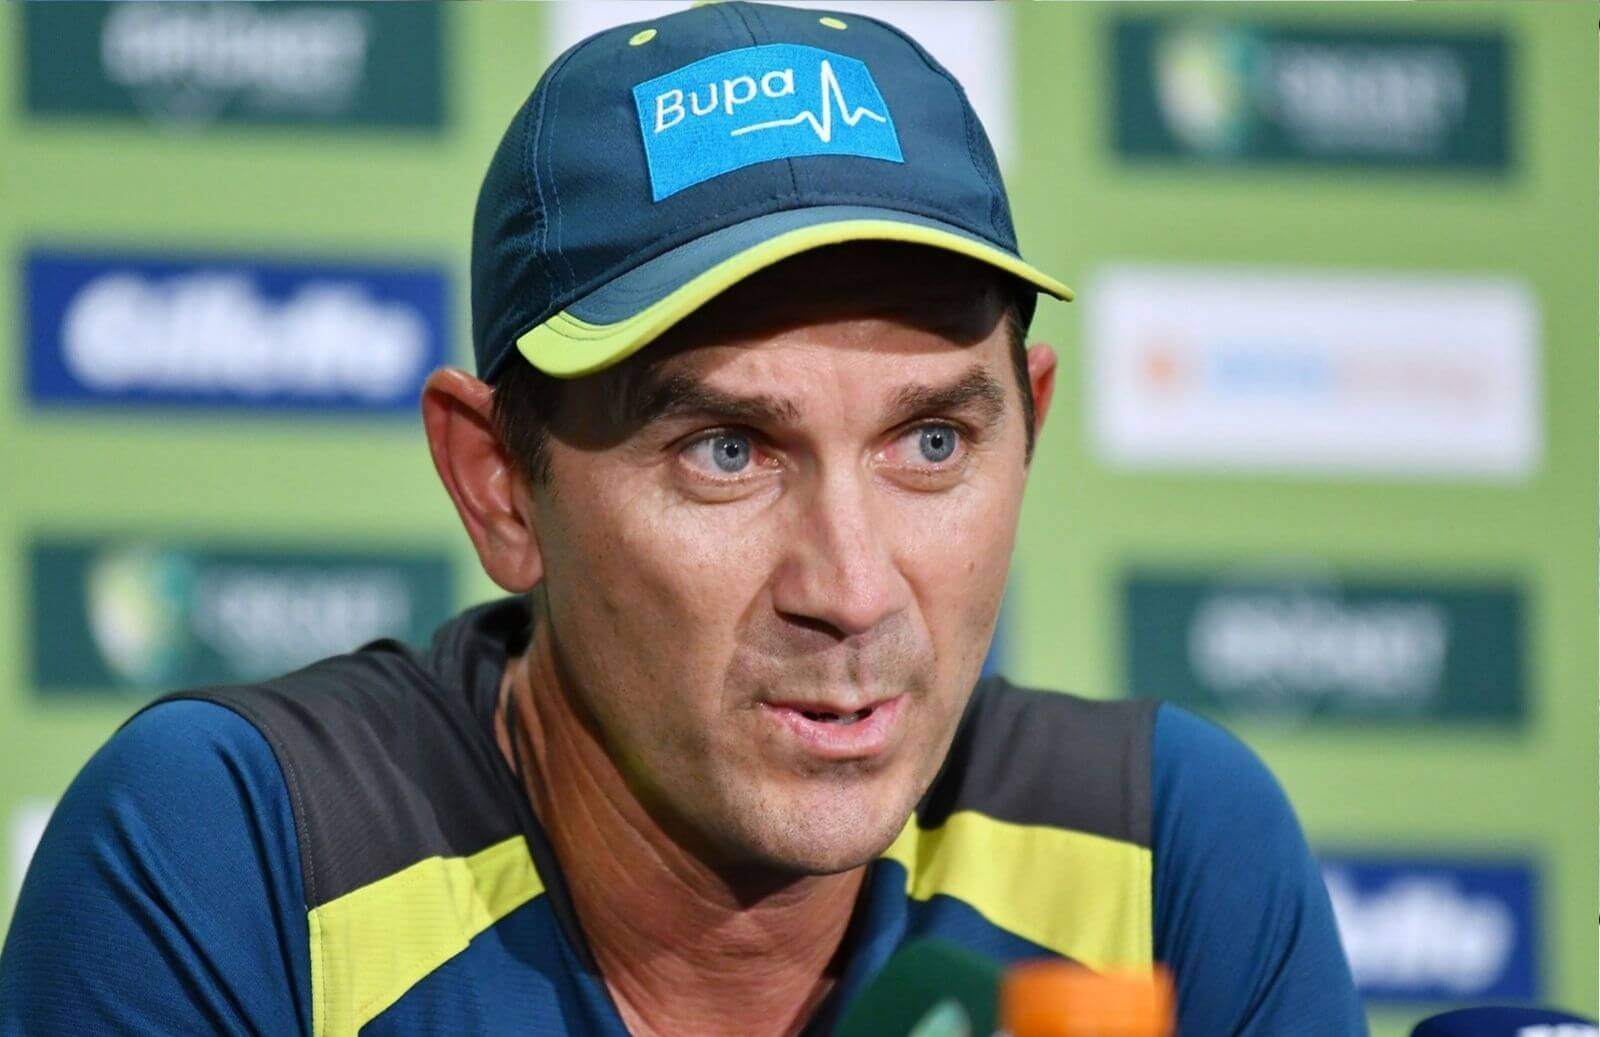 IND vs AUS: Justin Langer Confirms Australia's Playing XI For Boxing Day Test. Here Is The Team